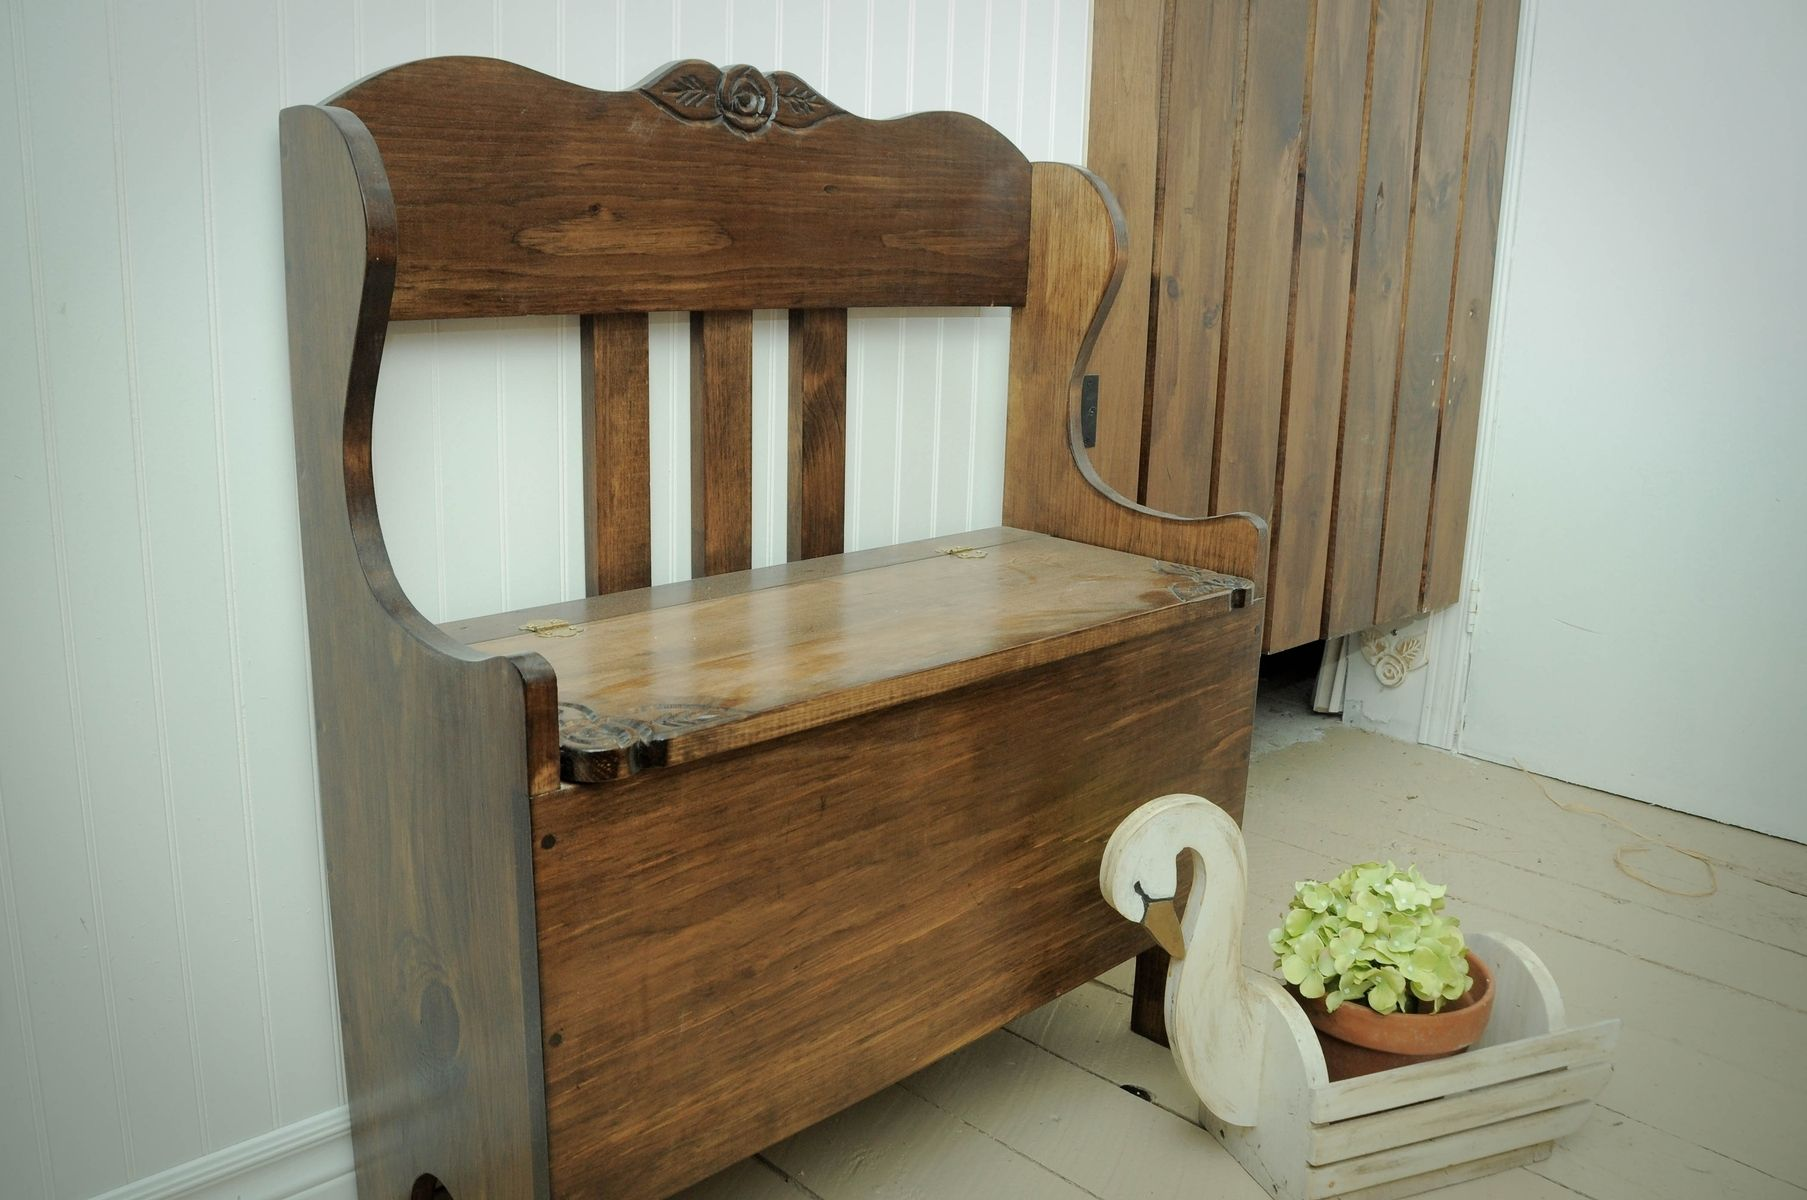 Stupendous Custom Entry Bench Storage Bench By Eugenie Woodcraft Ncnpc Chair Design For Home Ncnpcorg